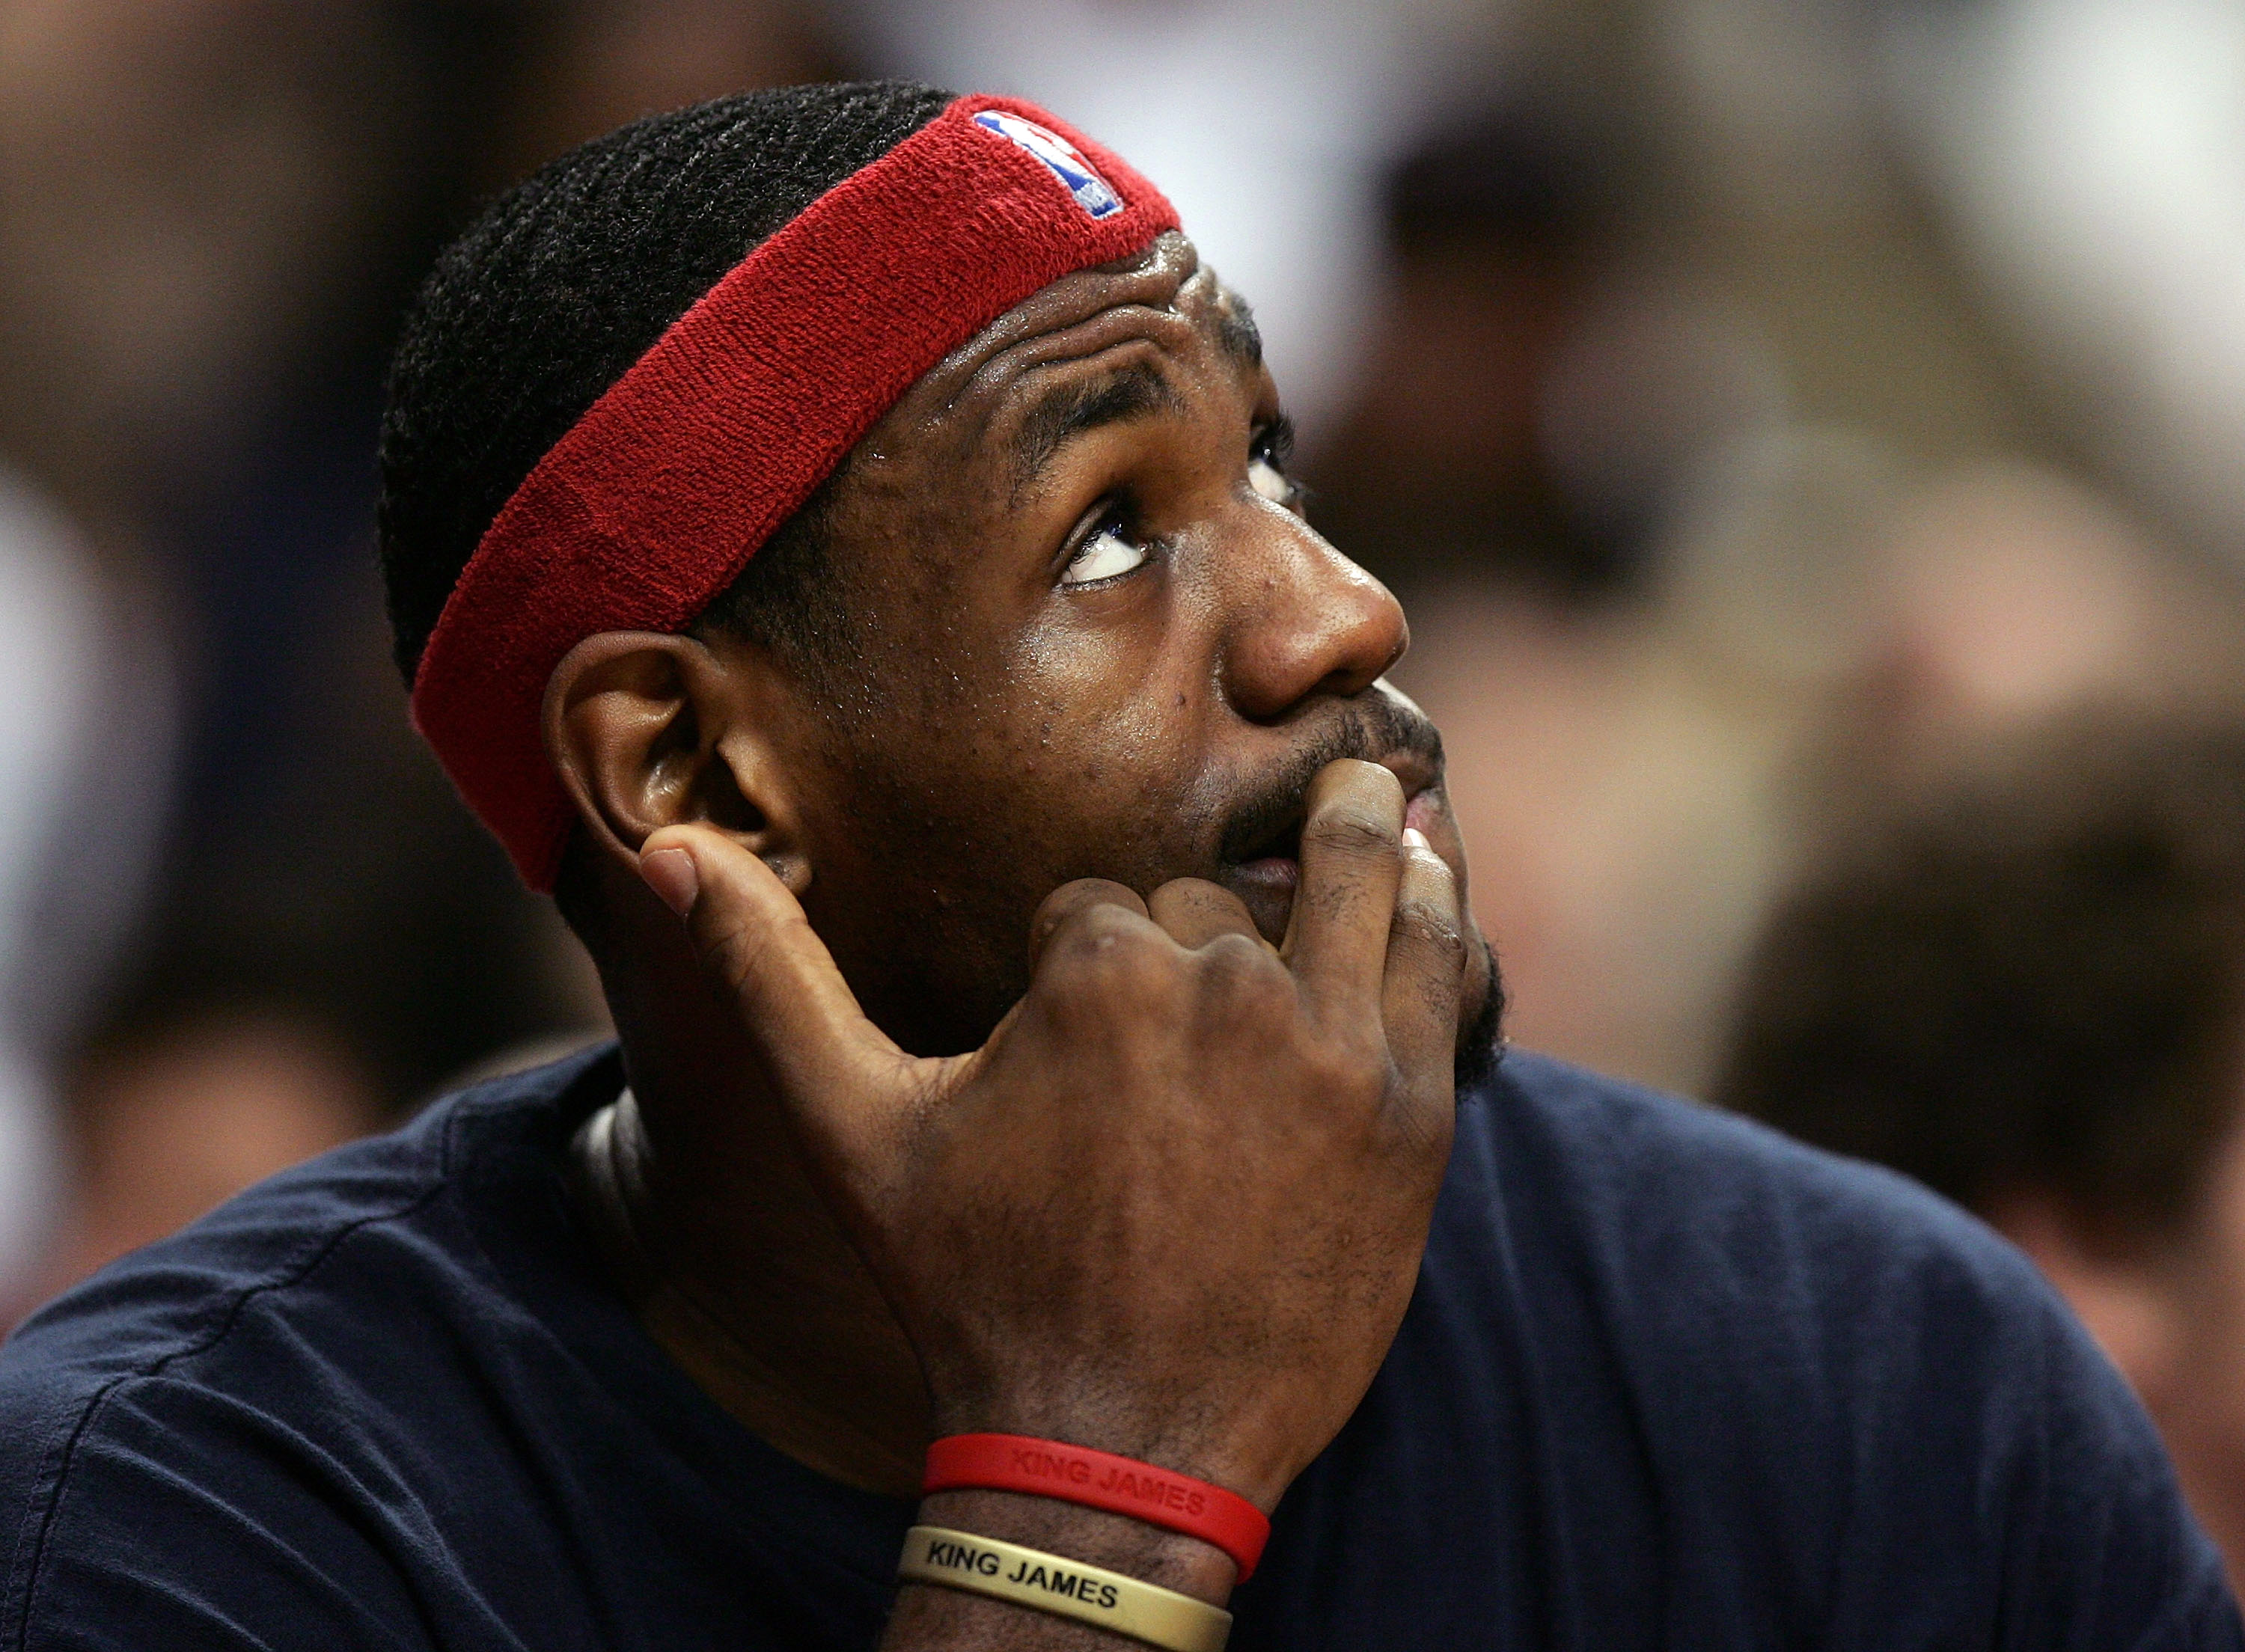 CHICAGO - DECEMBER 22:  LeBron James #23 of the Cleveland Cavaliers watches the replay board and bites his nails while sitting on the bench during a game against the Chicago Bulls on December 22, 2005 at the United Center in Chicago, Illinois.  NOTE TO US